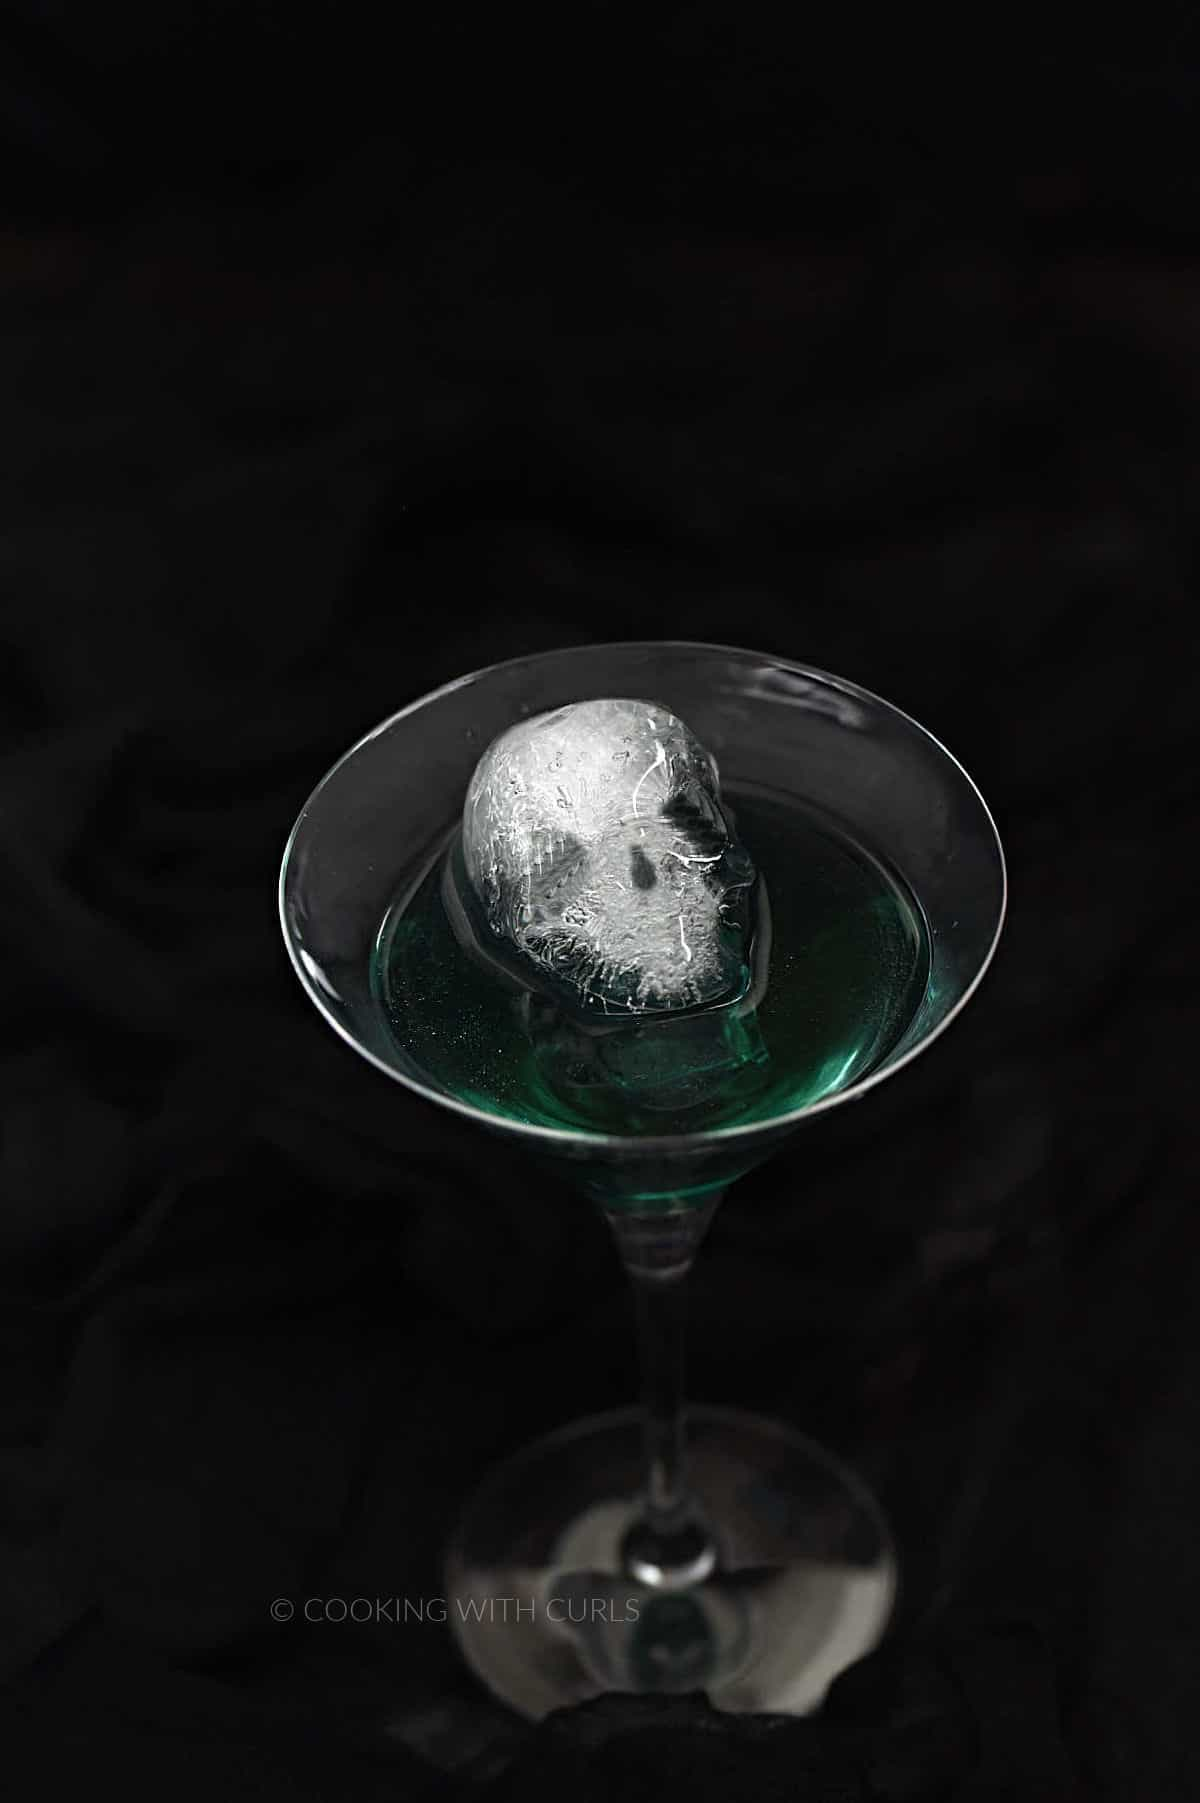 A skull shaped ice cube floating in glittery, emerald green liquid in a martini glass.